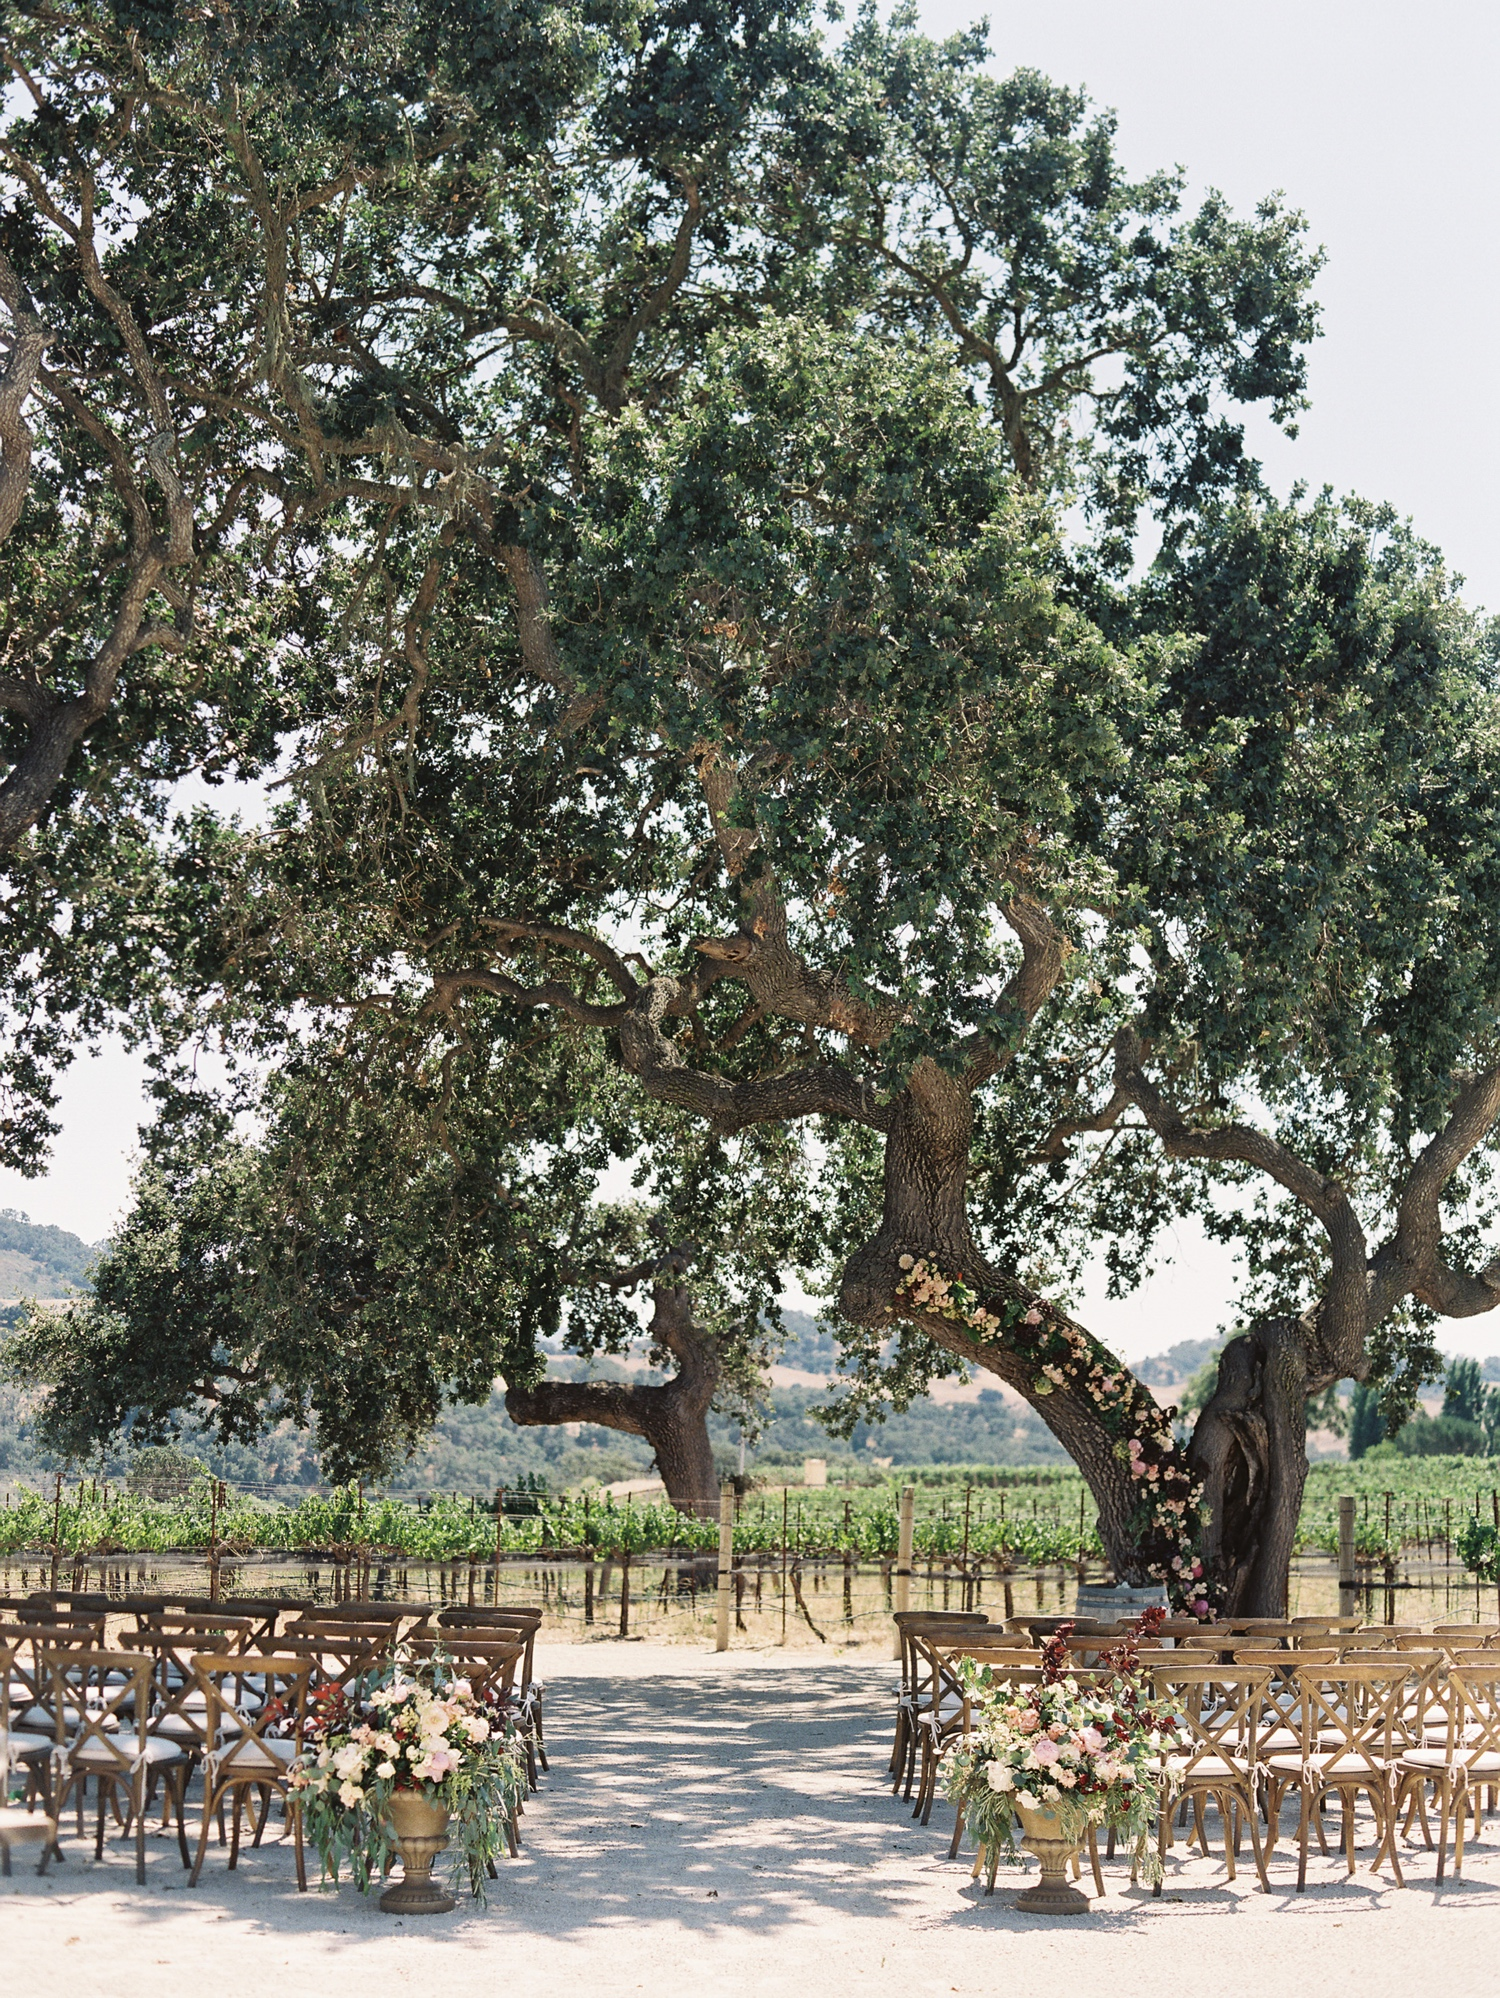 Sunstone Winery wedding ceremony under large oak tree in vineyard